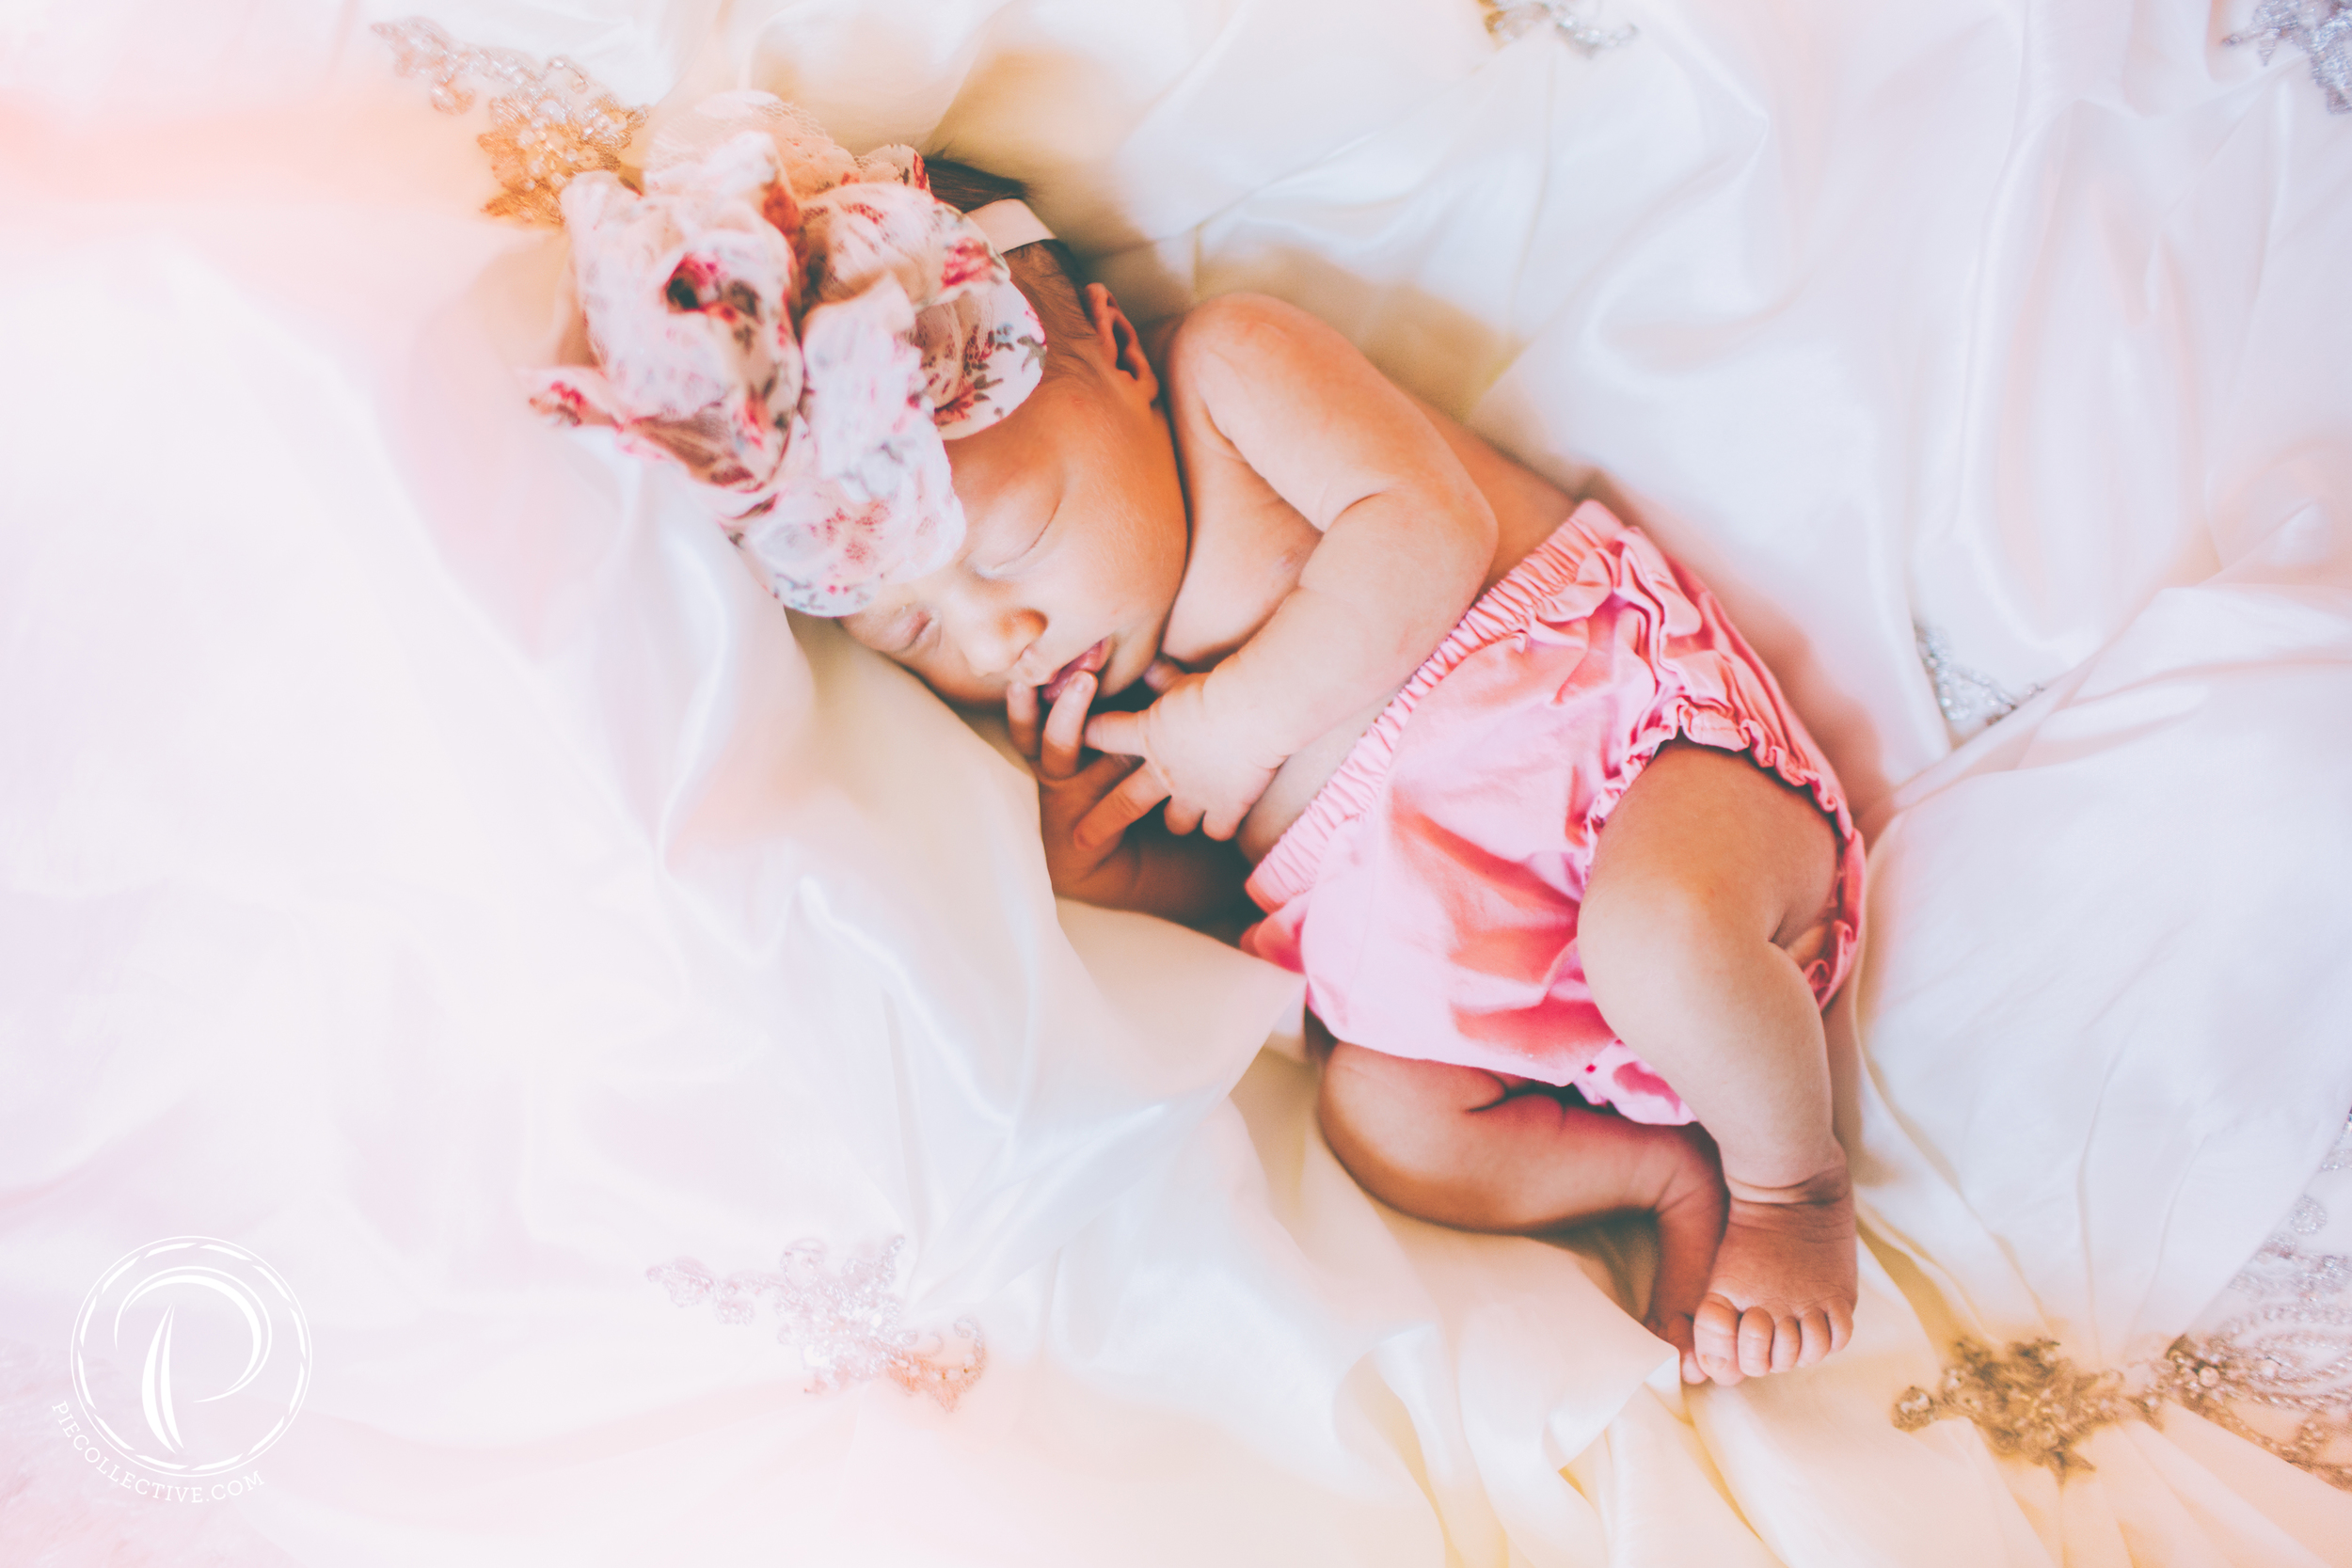 So peacefully laying on her mama's wedding dress... / Canon 5D Mark III + 35mm f/1.4L + VSCO Film